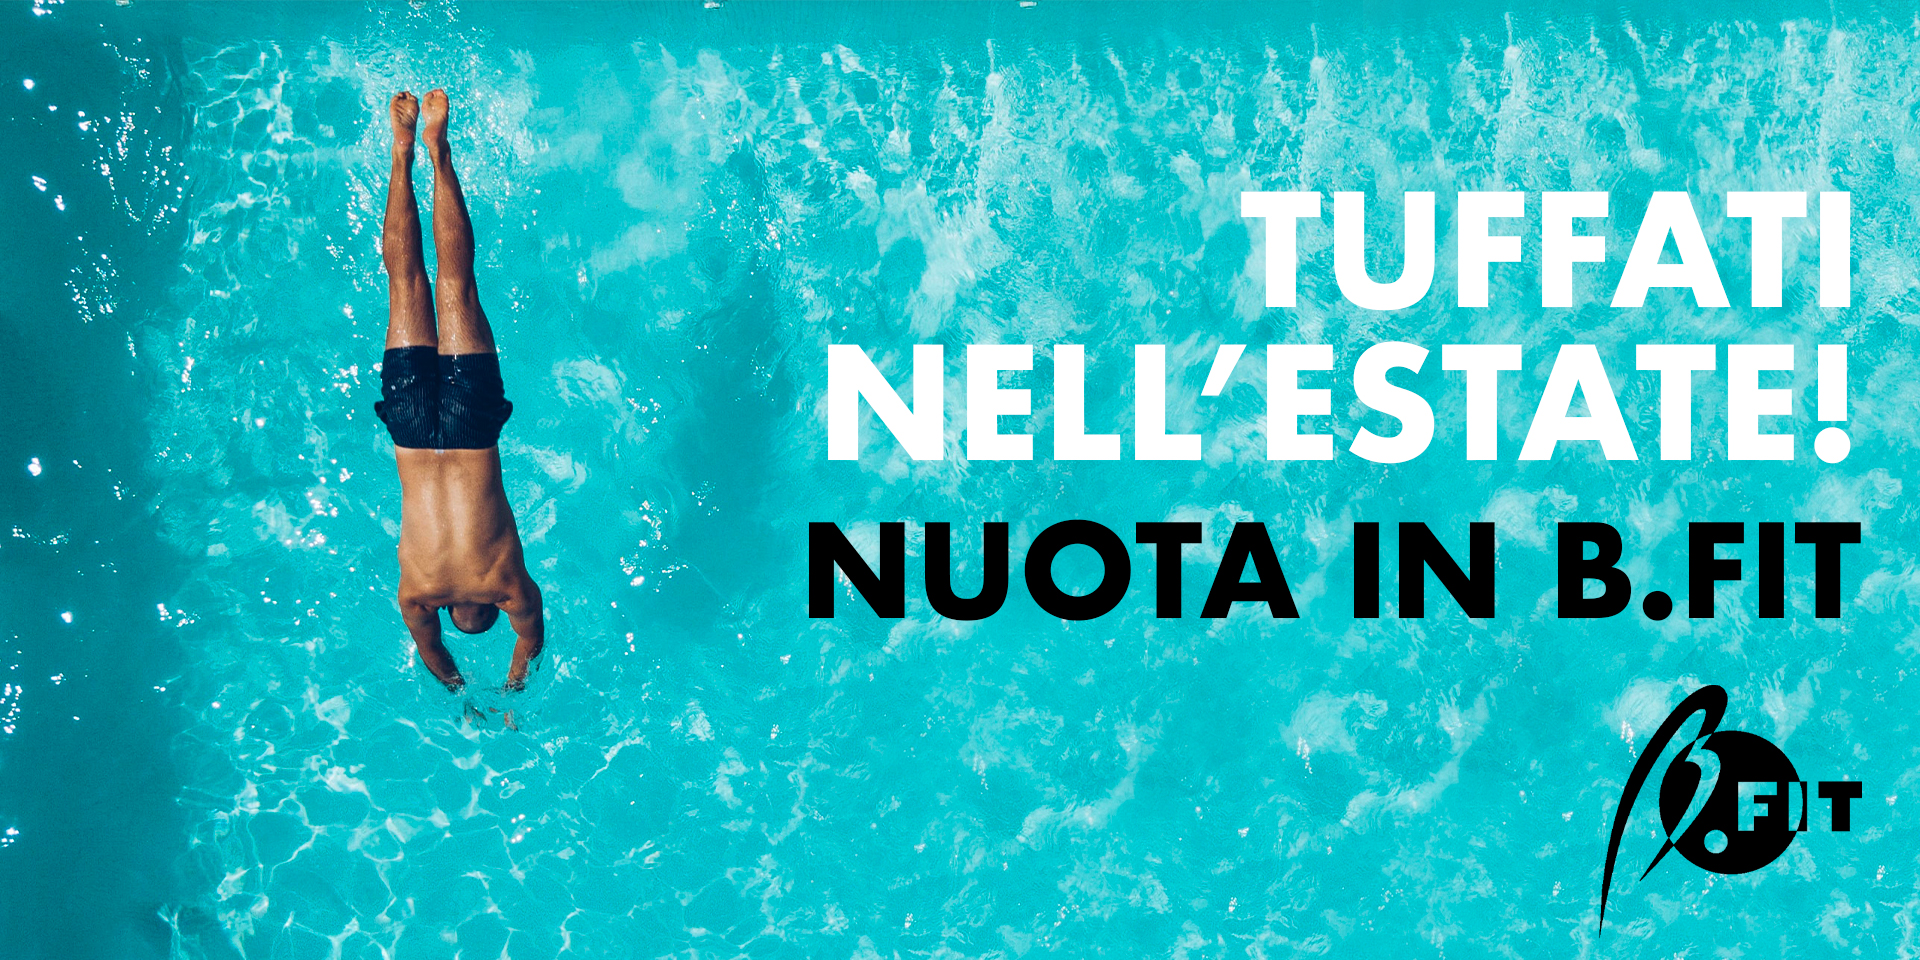 Banner vieni a nuotare in b.fit!